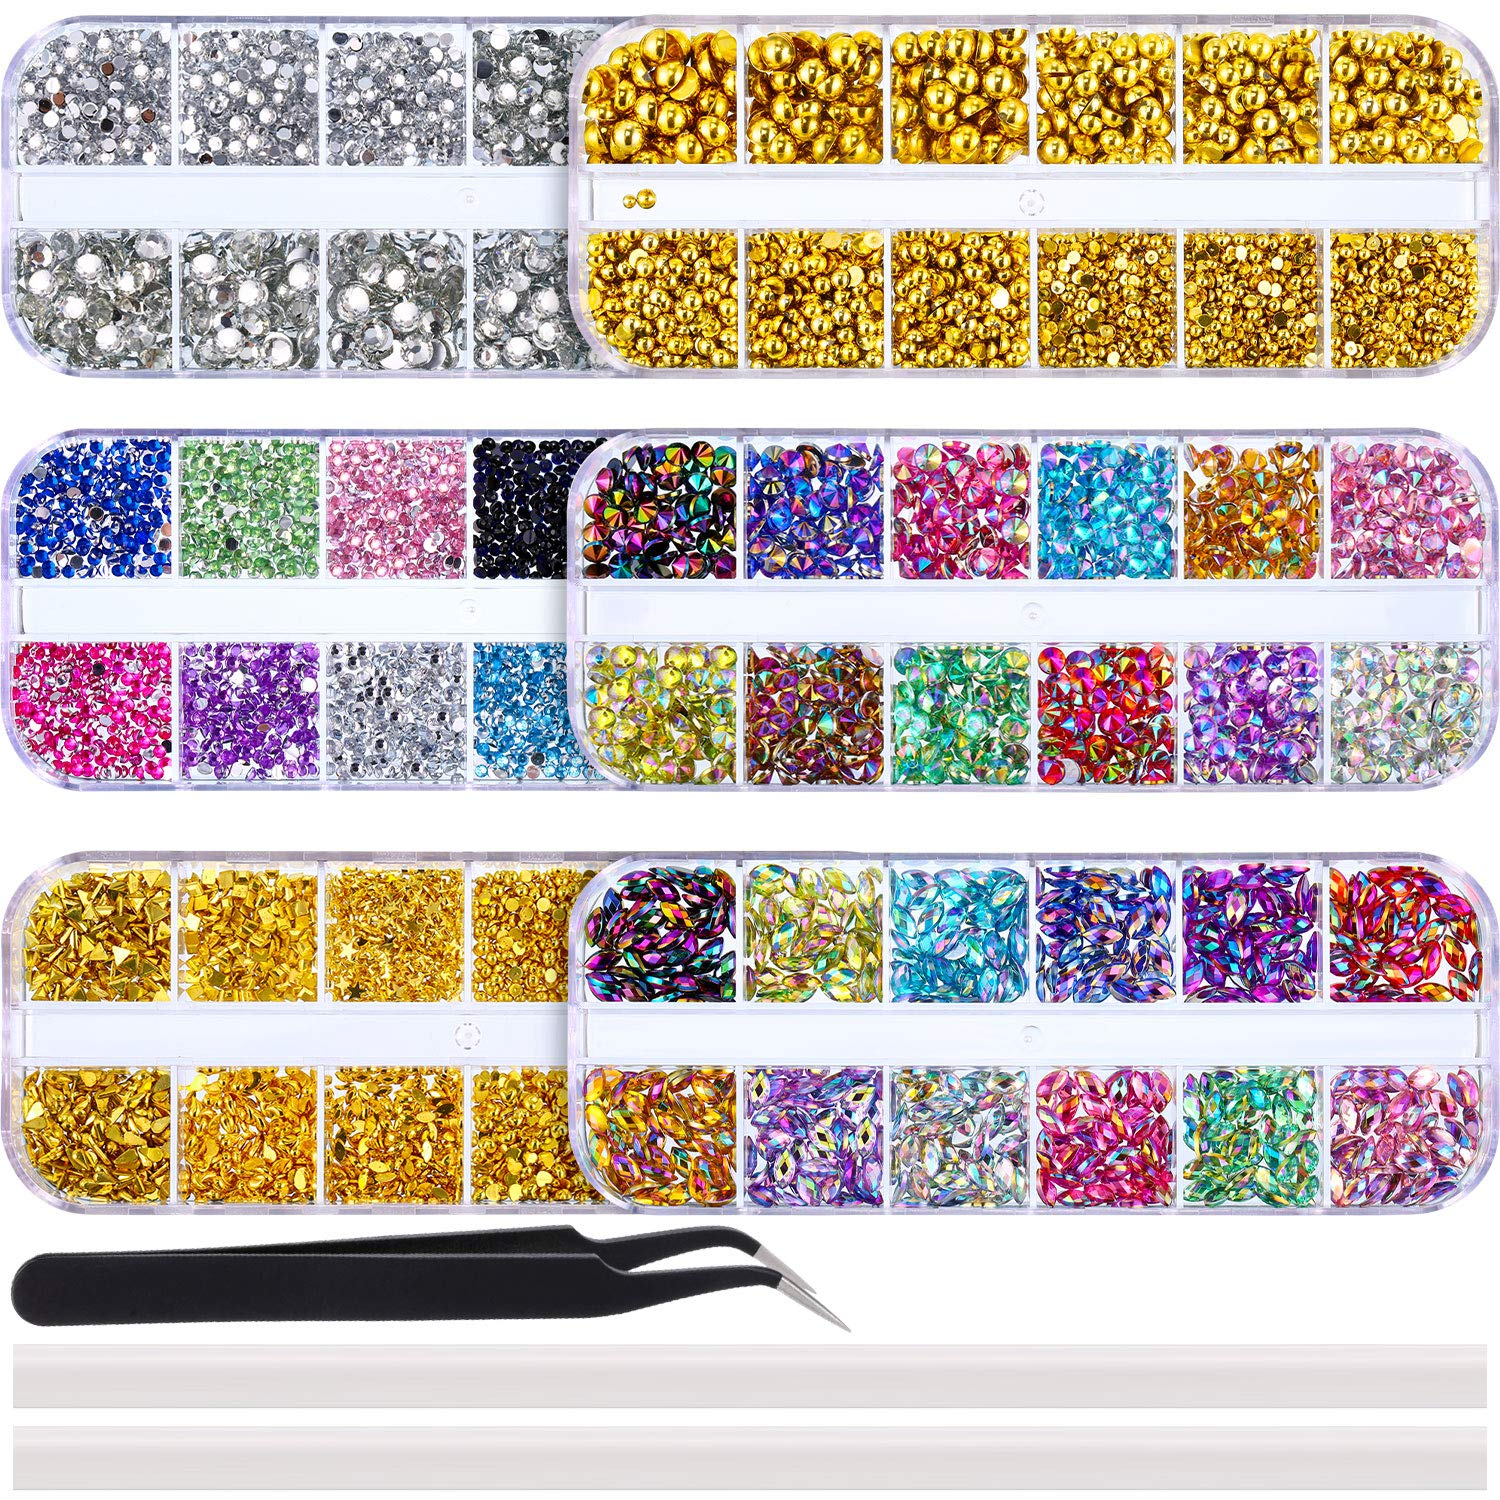 Bememo 13000 Pieces Nail Art Rhinestones Kit Nail Rhinestones Nail Studs Half Pearl Horse Eye Rhinestones in 6 Boxes with Pick Up Tweezers and 2 Pieces Rhinestones Picking Pen for Nail Art Craft DIY by Bememo